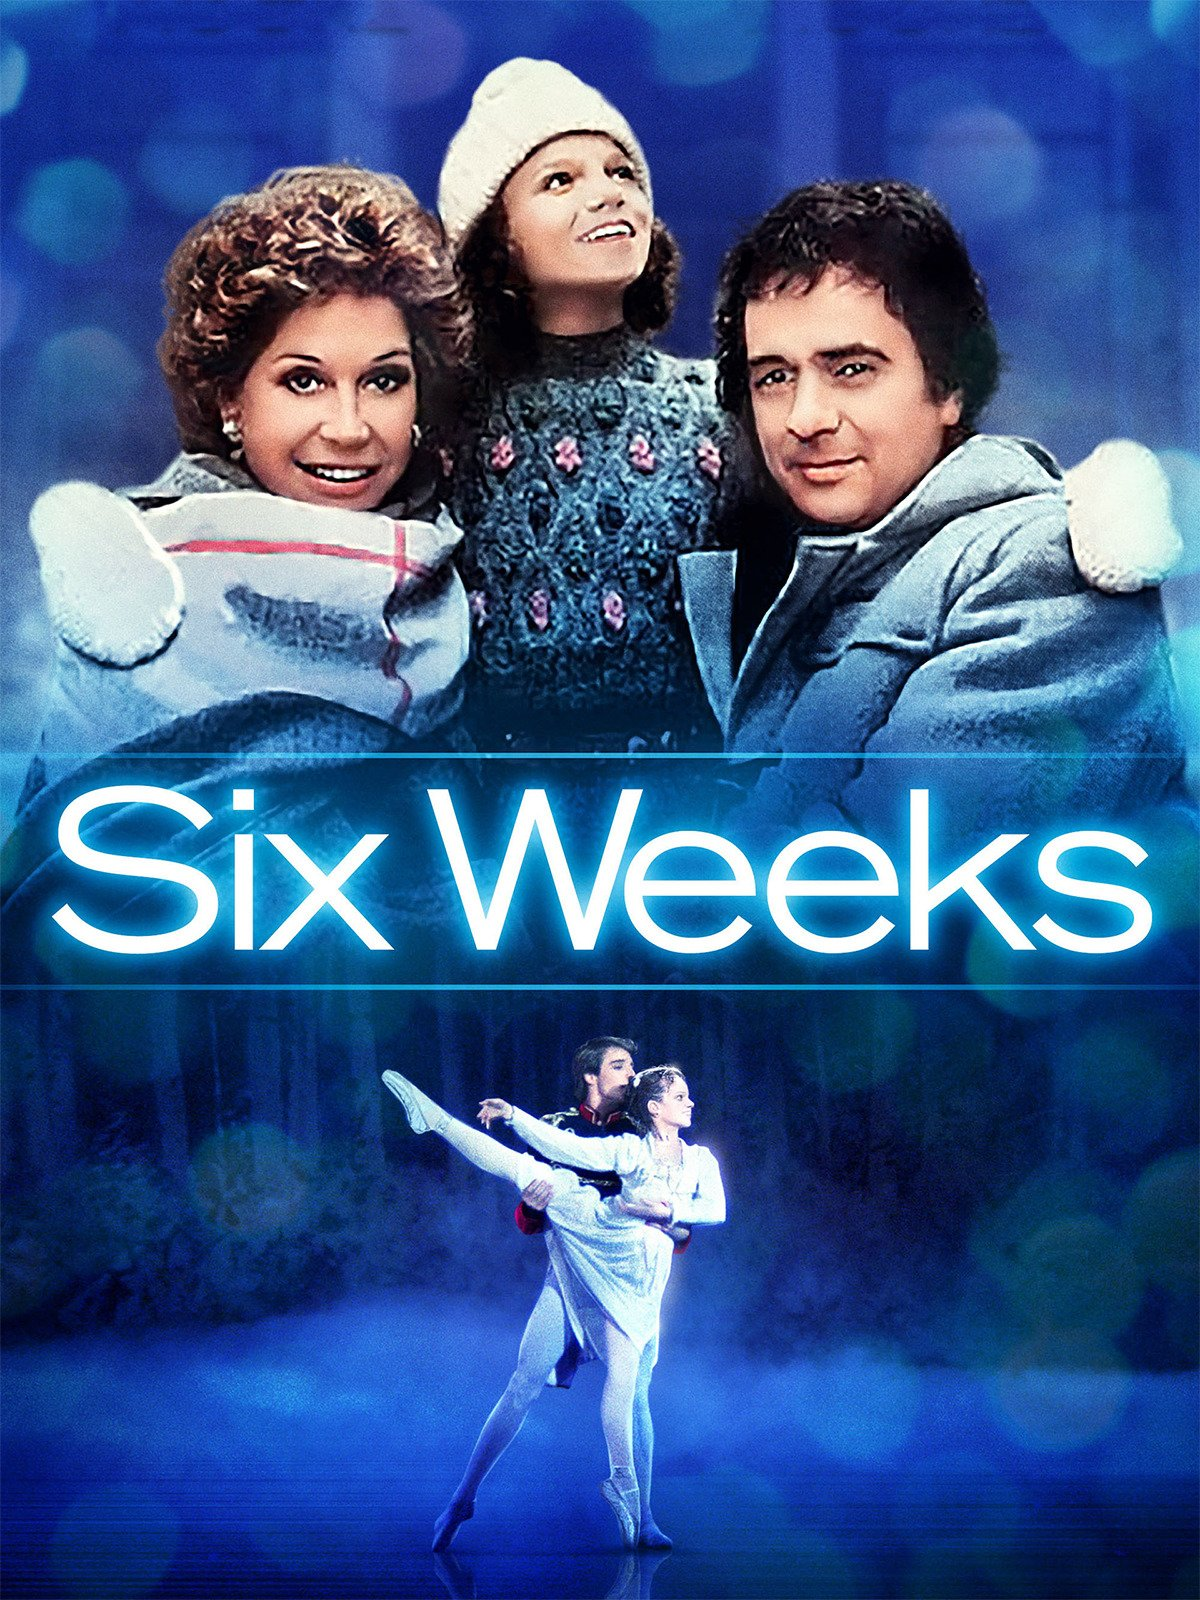 Six Weeks on Amazon Prime Video UK